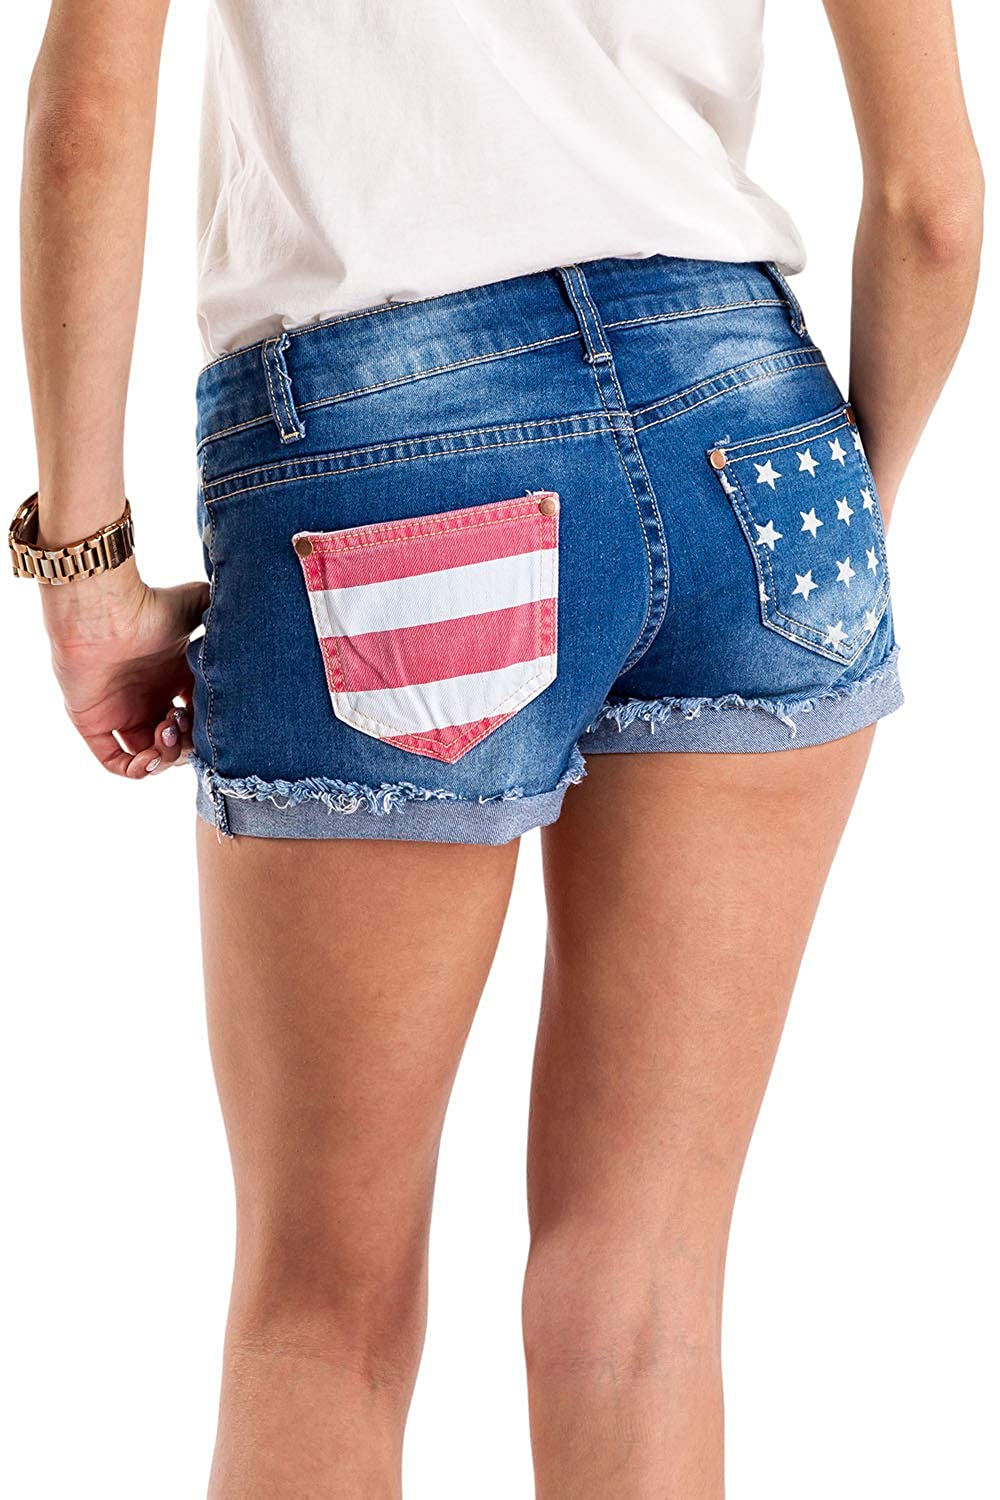 4bccd944b7 Tipsy Elves Women's Patriotic Red White and Blue Summer Beach Denim Jean  Shorts at Amazon Women's Clothing store: